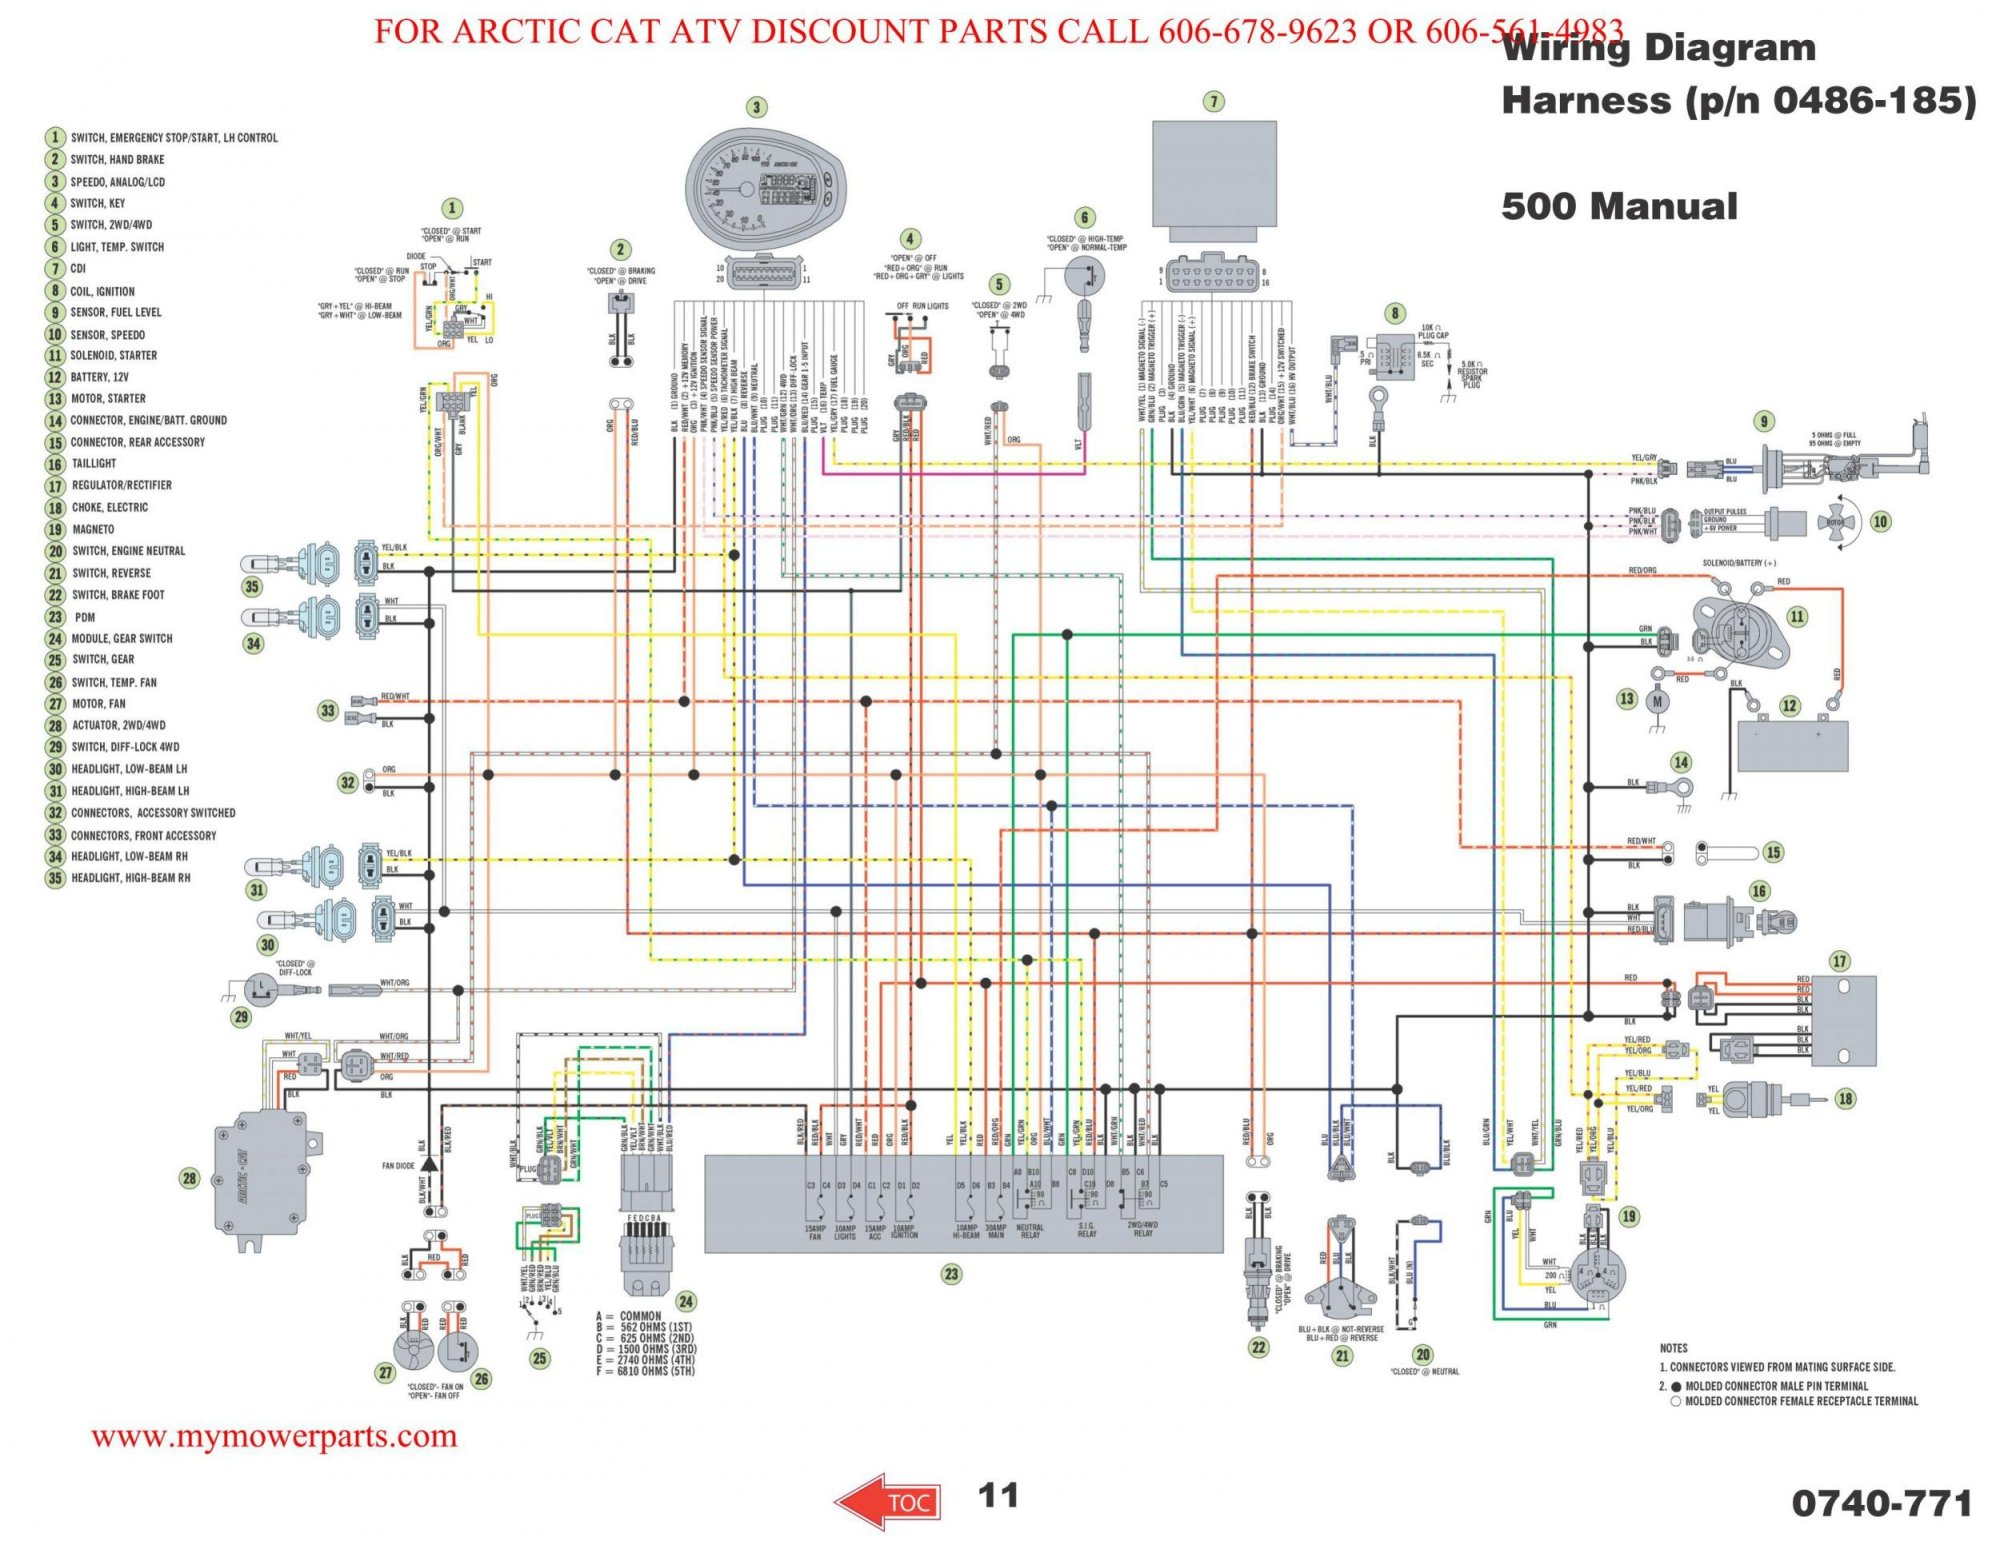 hight resolution of 2005 arctic cat 500 auto wiring diagram opinions about wiring ford locking hub assembly diagram 2006